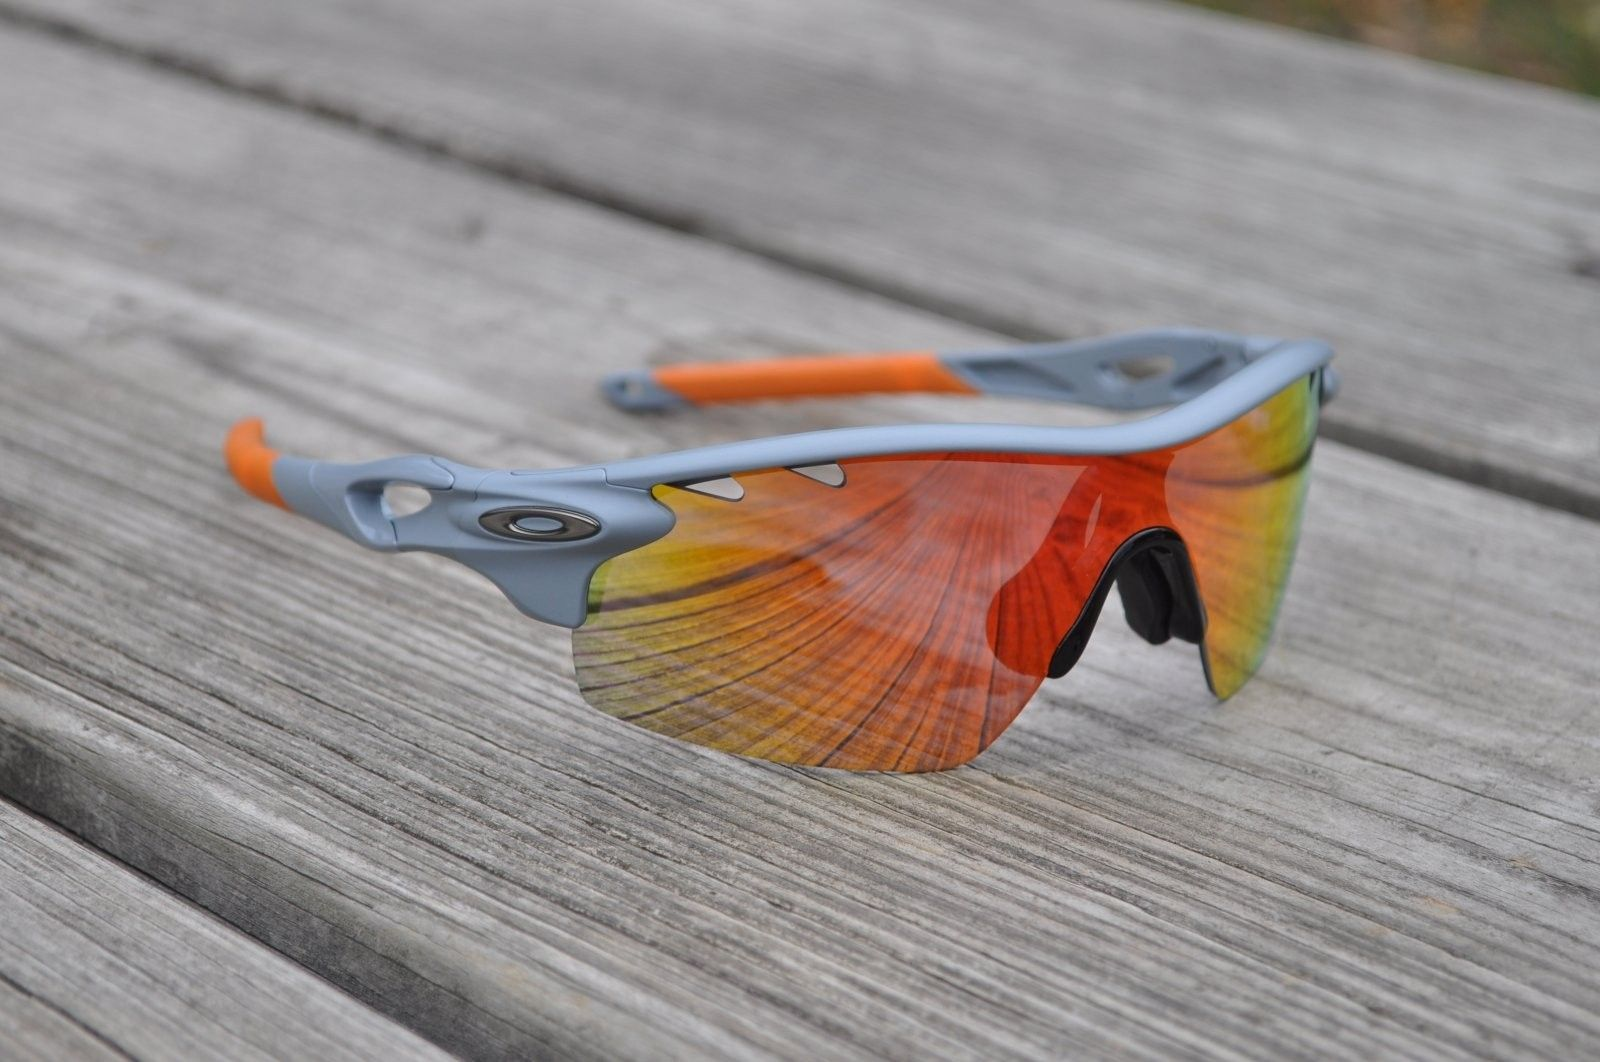 Oakley Olympic Radarlocks and more Purchases 2014 - 4.JPG